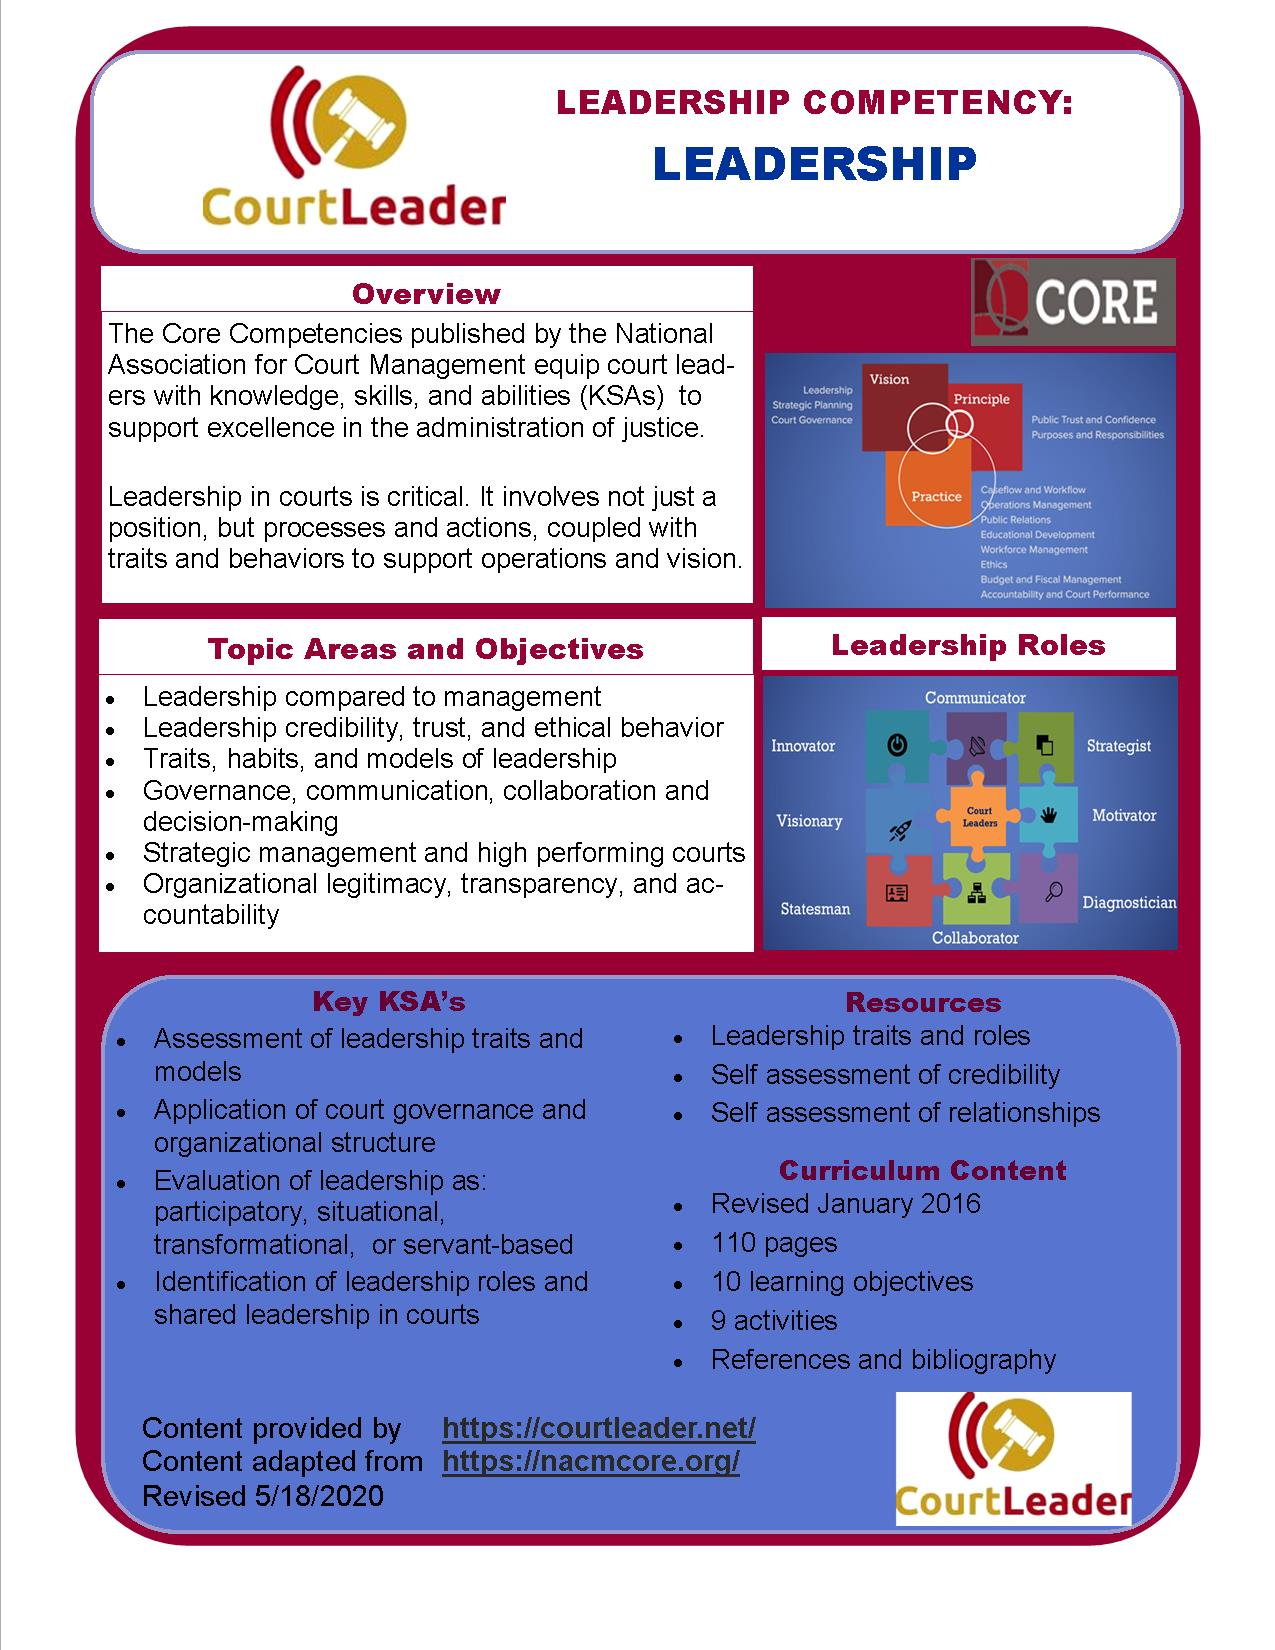 Court Leader Core Summary - Leadership rev 5-26-20